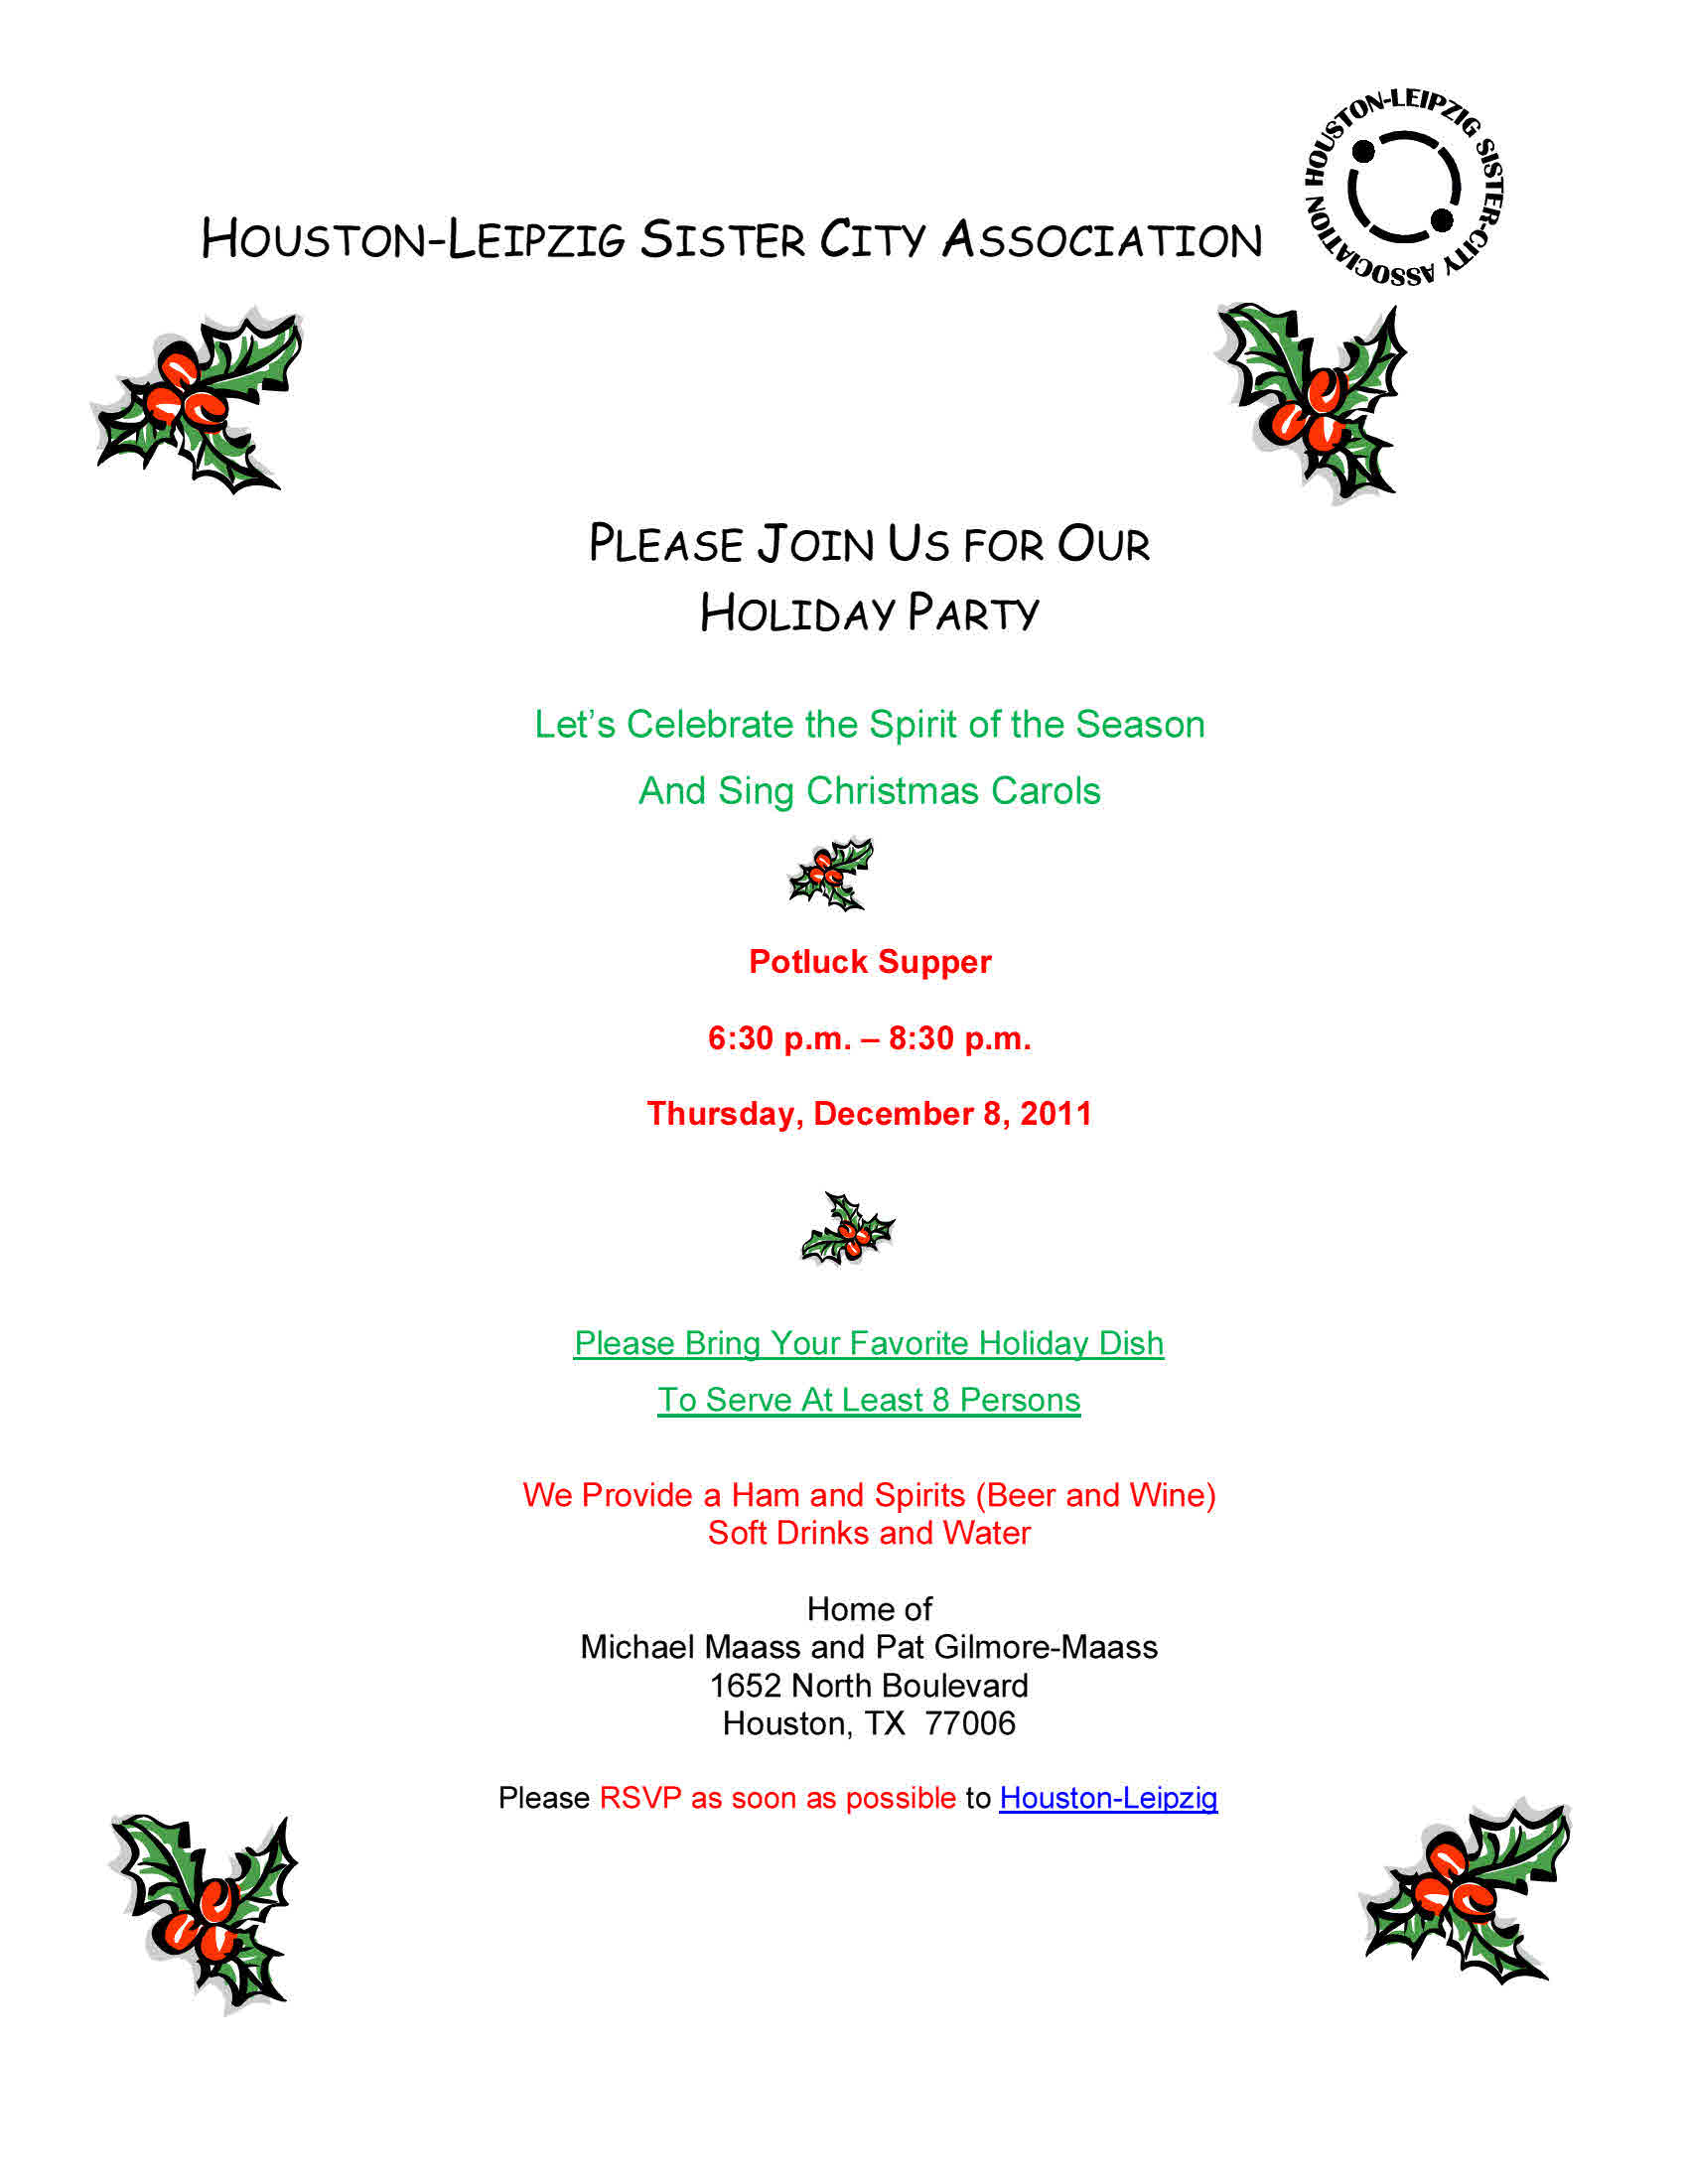 Copy of 2011 Holiday Party Invitation Website – Houston-Leipzig ...